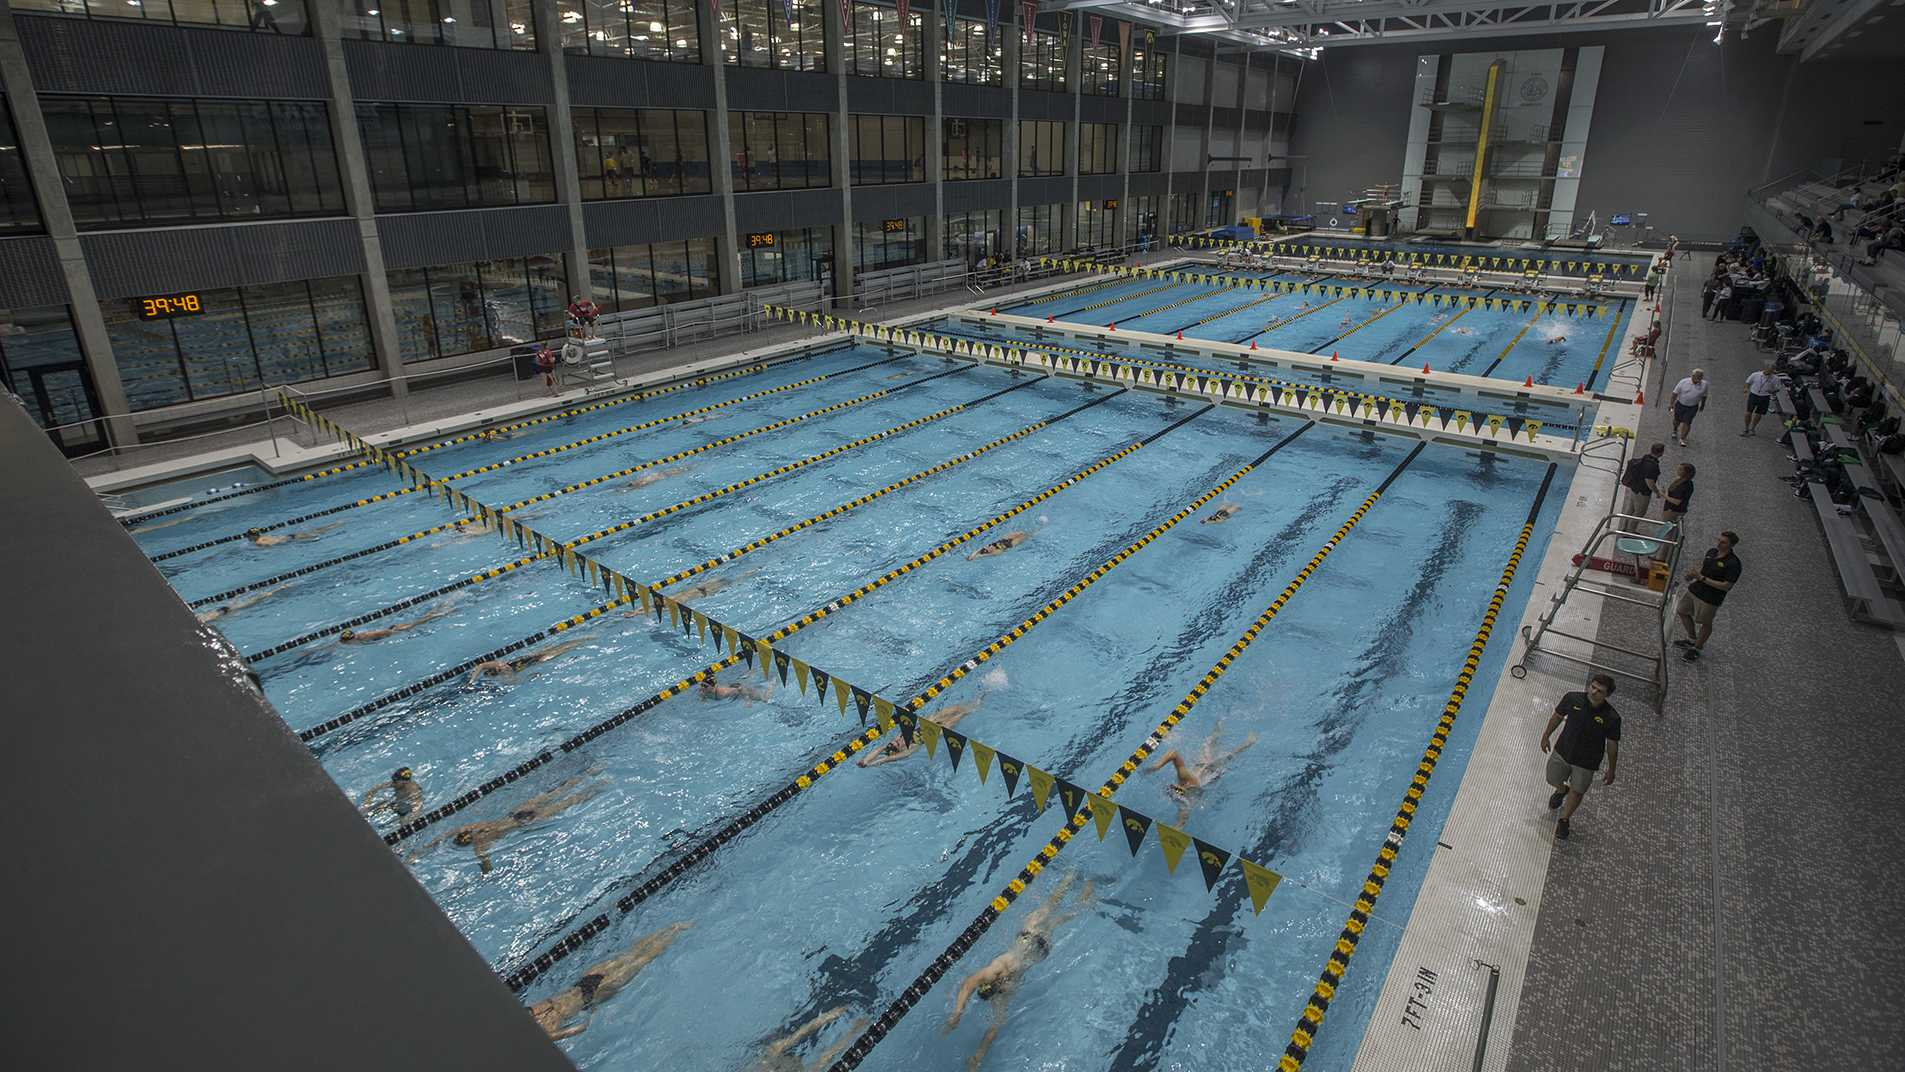 Swimmers warm up before a swim meet between Iowa and Michigan State inside the Campus Recreation and Wellness Center Natatorium on Thursday, September 8, 2017. The Hawkeyes opened their 100th season of swim and dive. (Shivansh Ahuja/The Daily Iowan)